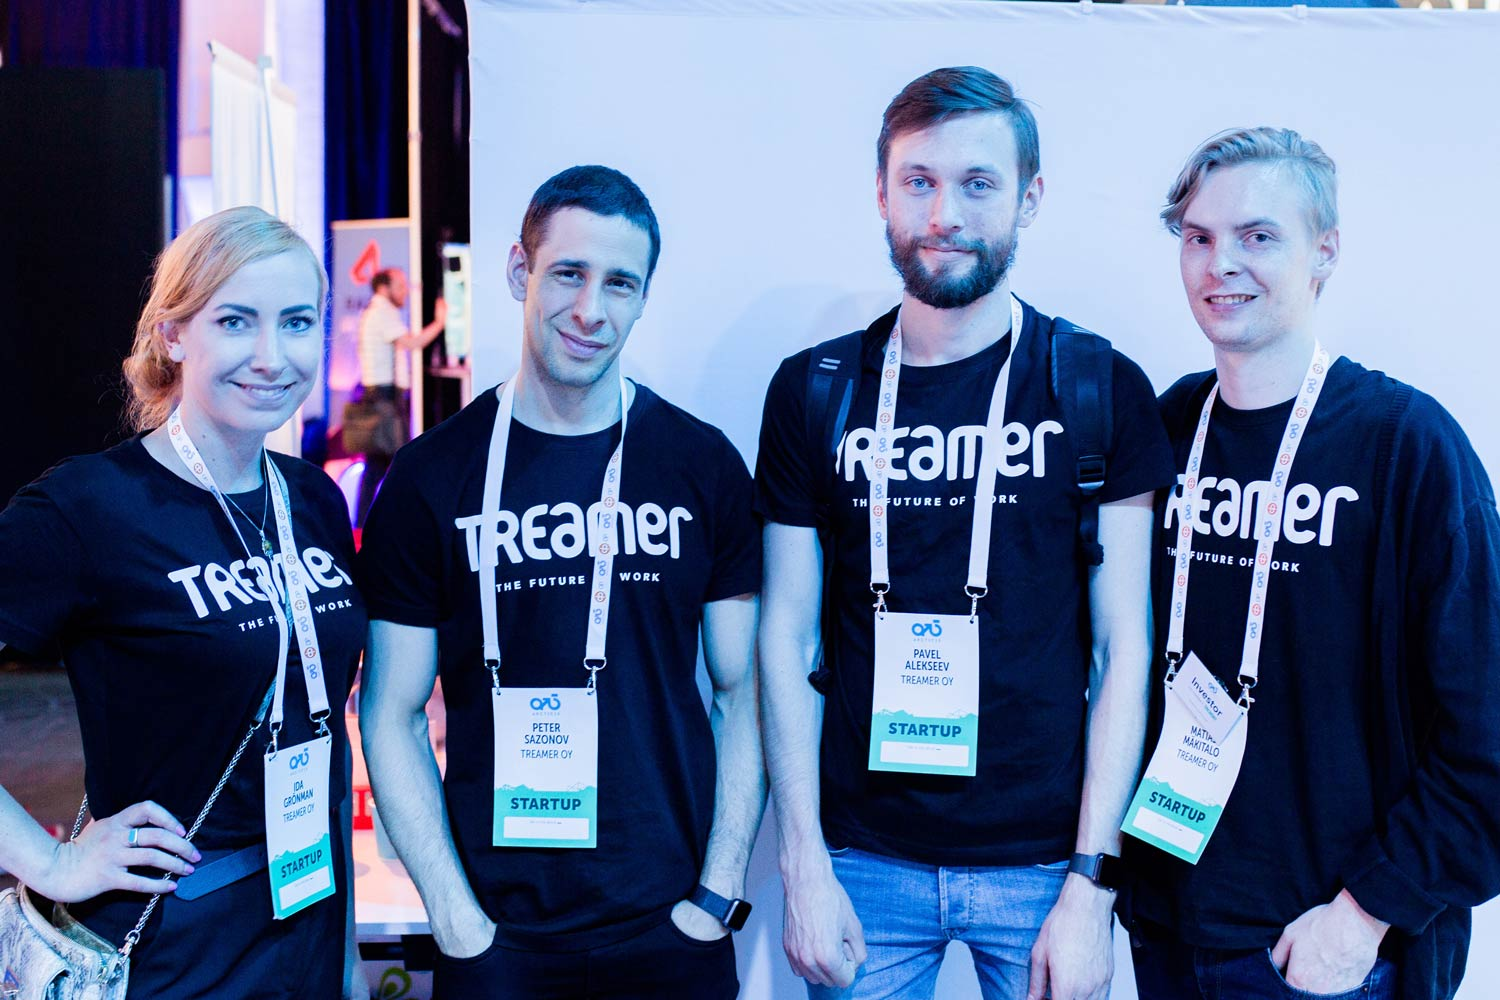 Treamer's team at Artic15